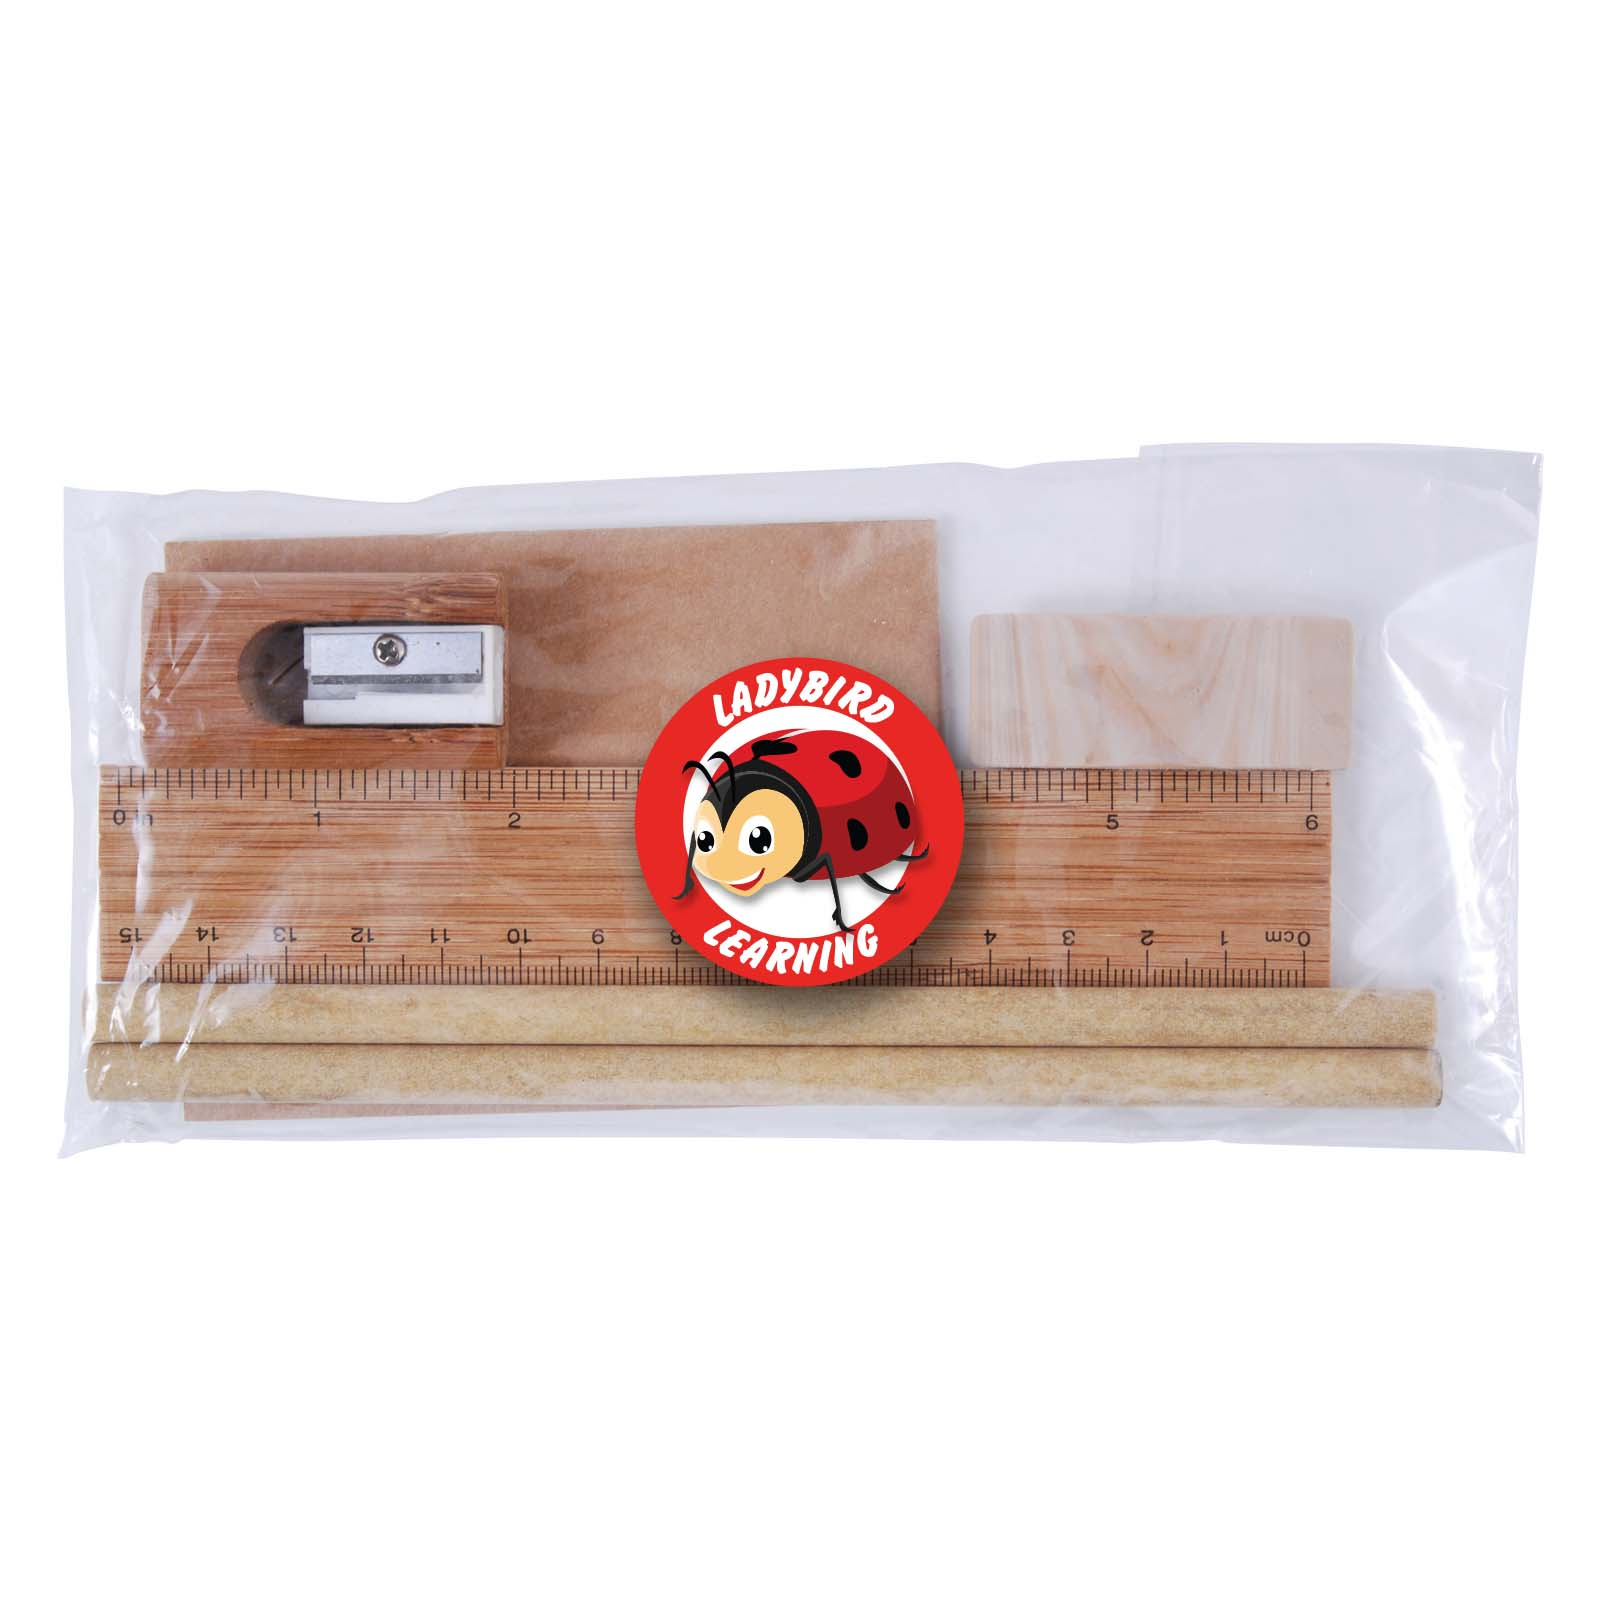 Bamboo Stationery Set in Cello Bag - Includes a full colour logo